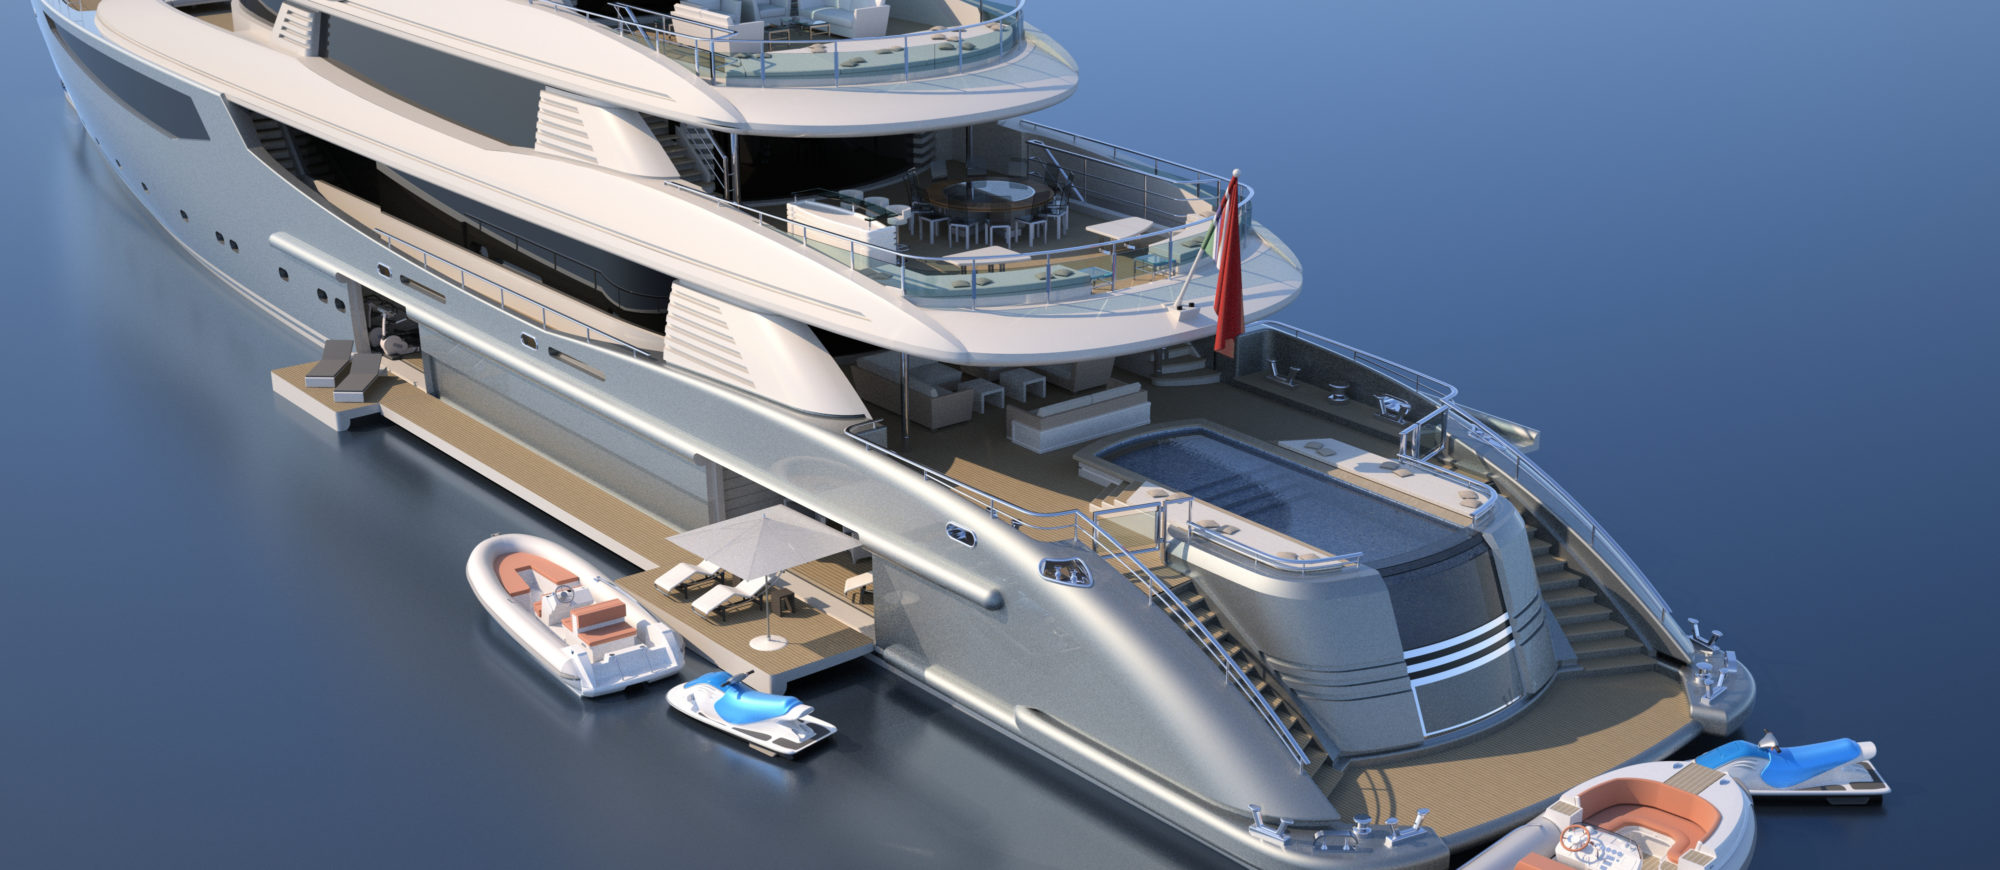 Conrad C233 Superyacht Concept Vallicelli Visualisation Aft Decks